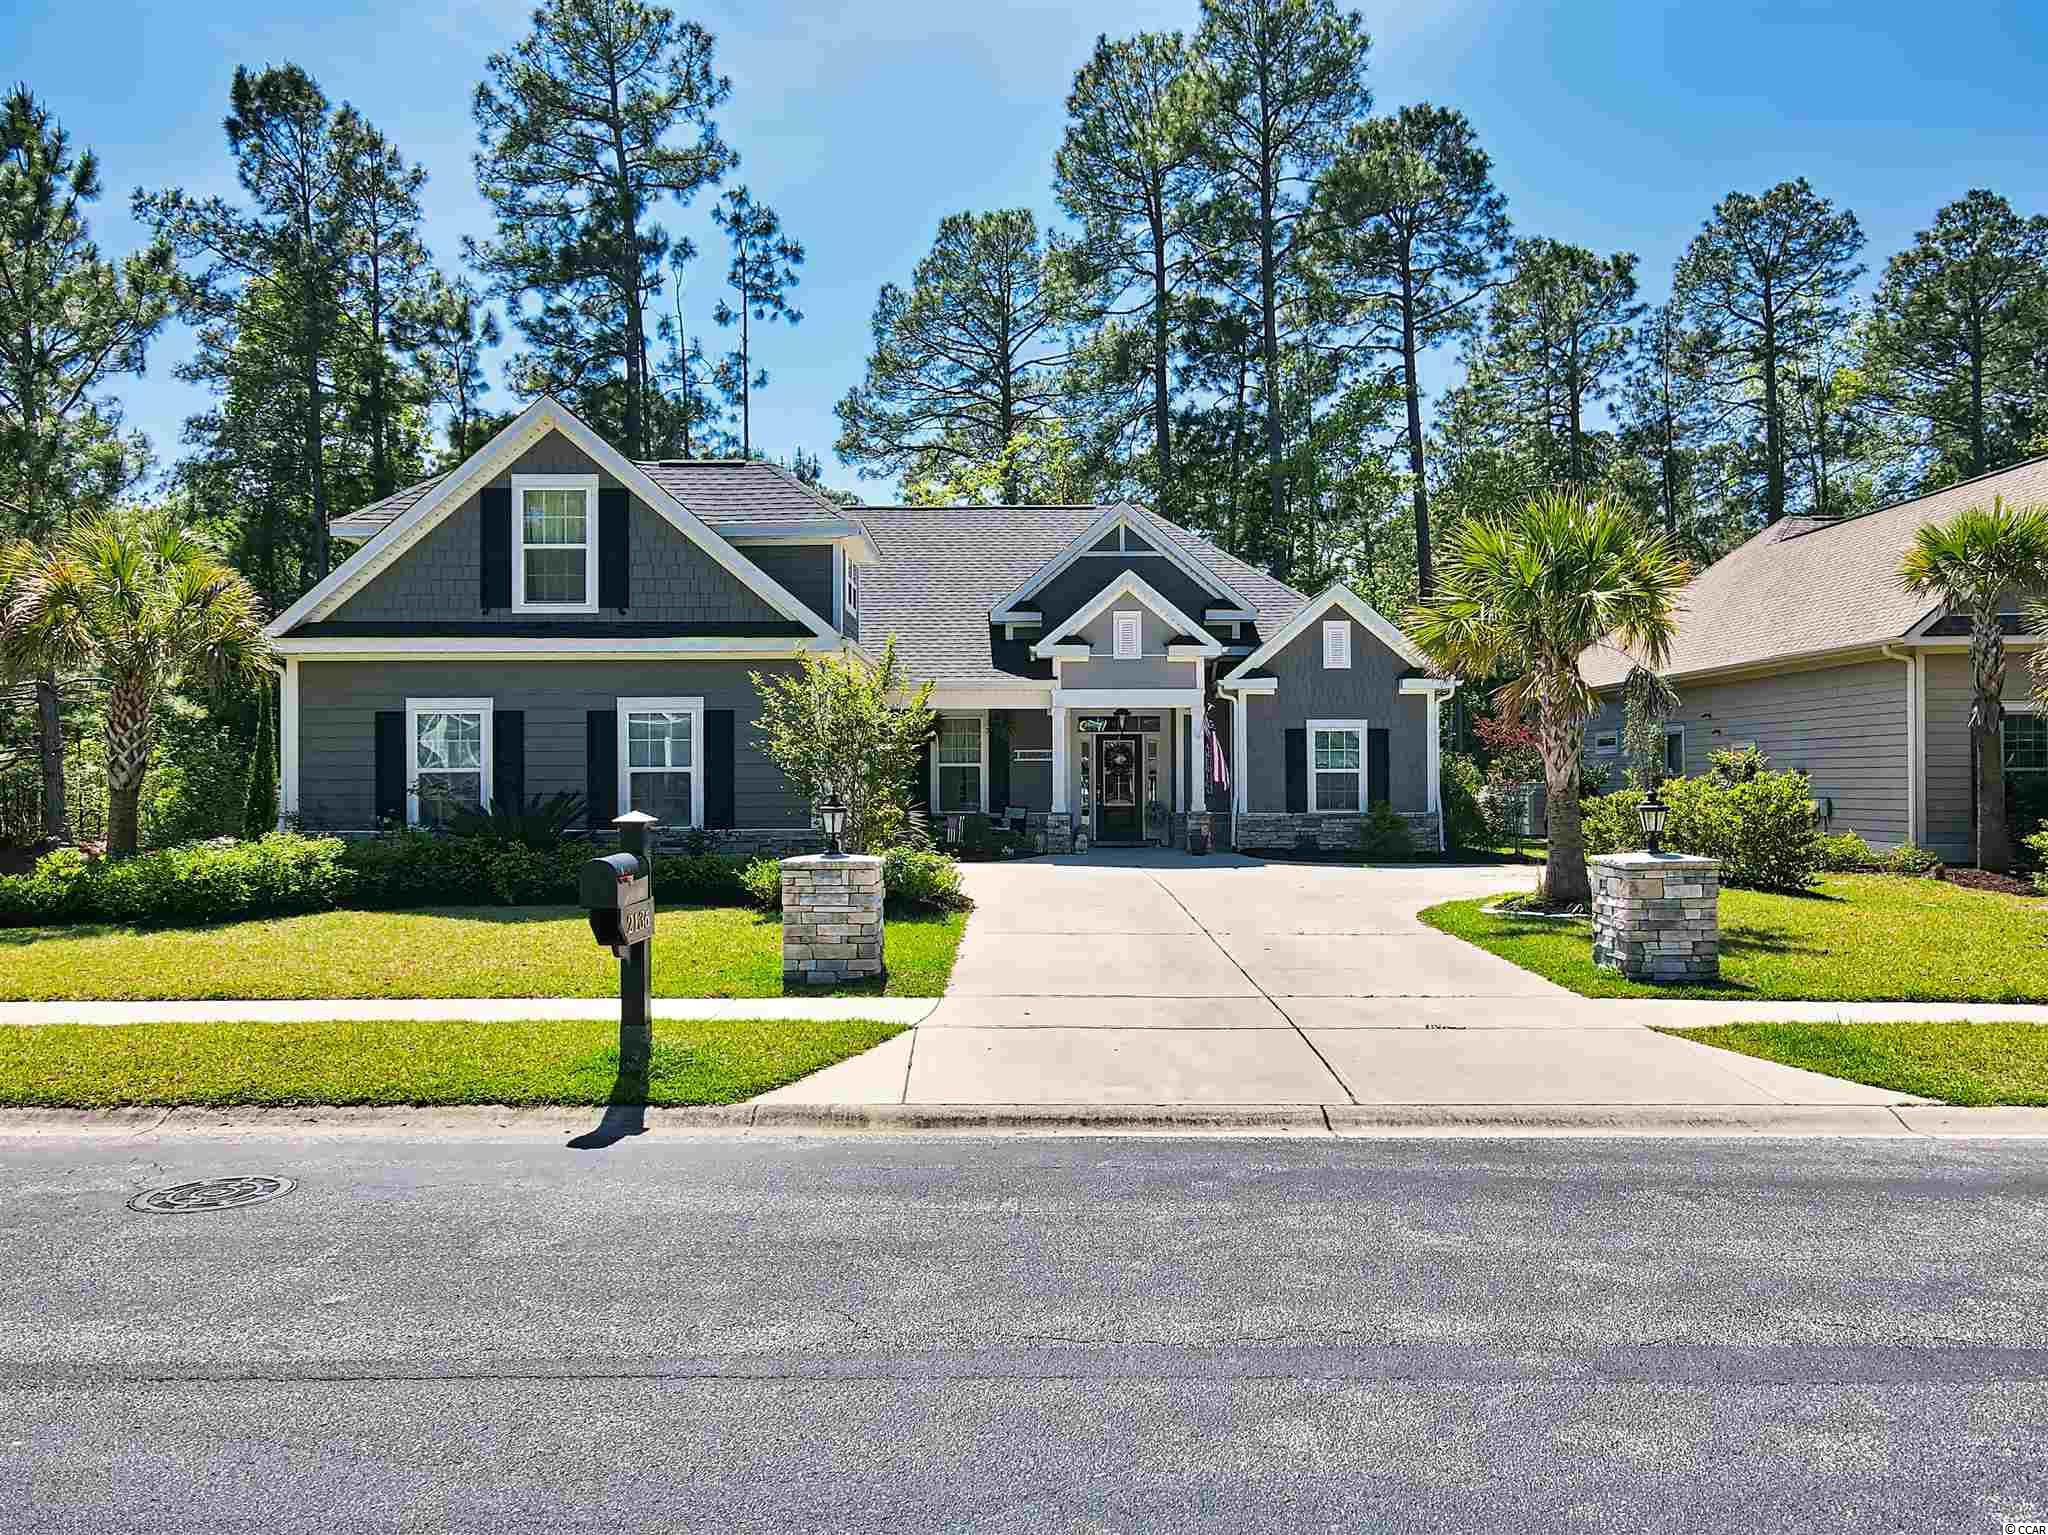 Looking for a recently built custom home in Cypress River Plantation?  Look no further.  This custom home offers 4 bedrooms and 3.5 bathrooms.  There are numerous custom upgrades throughout the entire home such as: chair rail, wainscoting, tray ceilings, crown moulding,  granite counter tops with a gourmet kitchen etc.  As you enter the front door you will notice the wide open floorplan with a cultured stone fireplace.   You will notice the hardwood floors run throughout the first floor.  The great room is a huge space for entertaining.  The master bedroom has a double stack tray ceiling with crown moulding.  The master bathroom has a walk in shower that has custom stone tile from floor to ceiling.  Inside the master suite closet you will find custom built closet organizers.  On the other side of the house there are two spare bedrooms with a full size bathroom between them. There is a jetted tub complete with tile shower in the spare bathroom.  There is a huge bonus space that is 24x12 over the garage that has a full bathroom, built in queen bed and plenty of space for an office or flex space.    The back of the house features a screened in porch that has a door at each end of the 27 foot long space.  Just outside the porch is a custom concrete pad with a half wall area that has cultured stone.  This private area is perfect for grilling and entertaining in the backyard.  A propane line was installed so you will never run out of gas while grilling.   The backyard has black aluminum fencing with custom cultured stone columns.  The yard also comes complete with  an irrigation system and fully landscapped freshly mulched beds.  The front yard has a side entry garage with an oversized concrete pad complete with two lighted columns and cultured stone as you enter.   Cypress River Plantation is one of the most sought after communities in the Grand Strand.  It is gated, with security and backs up to the beautiful Intercoastal Waterway.  Amenities include a huge swimming poo